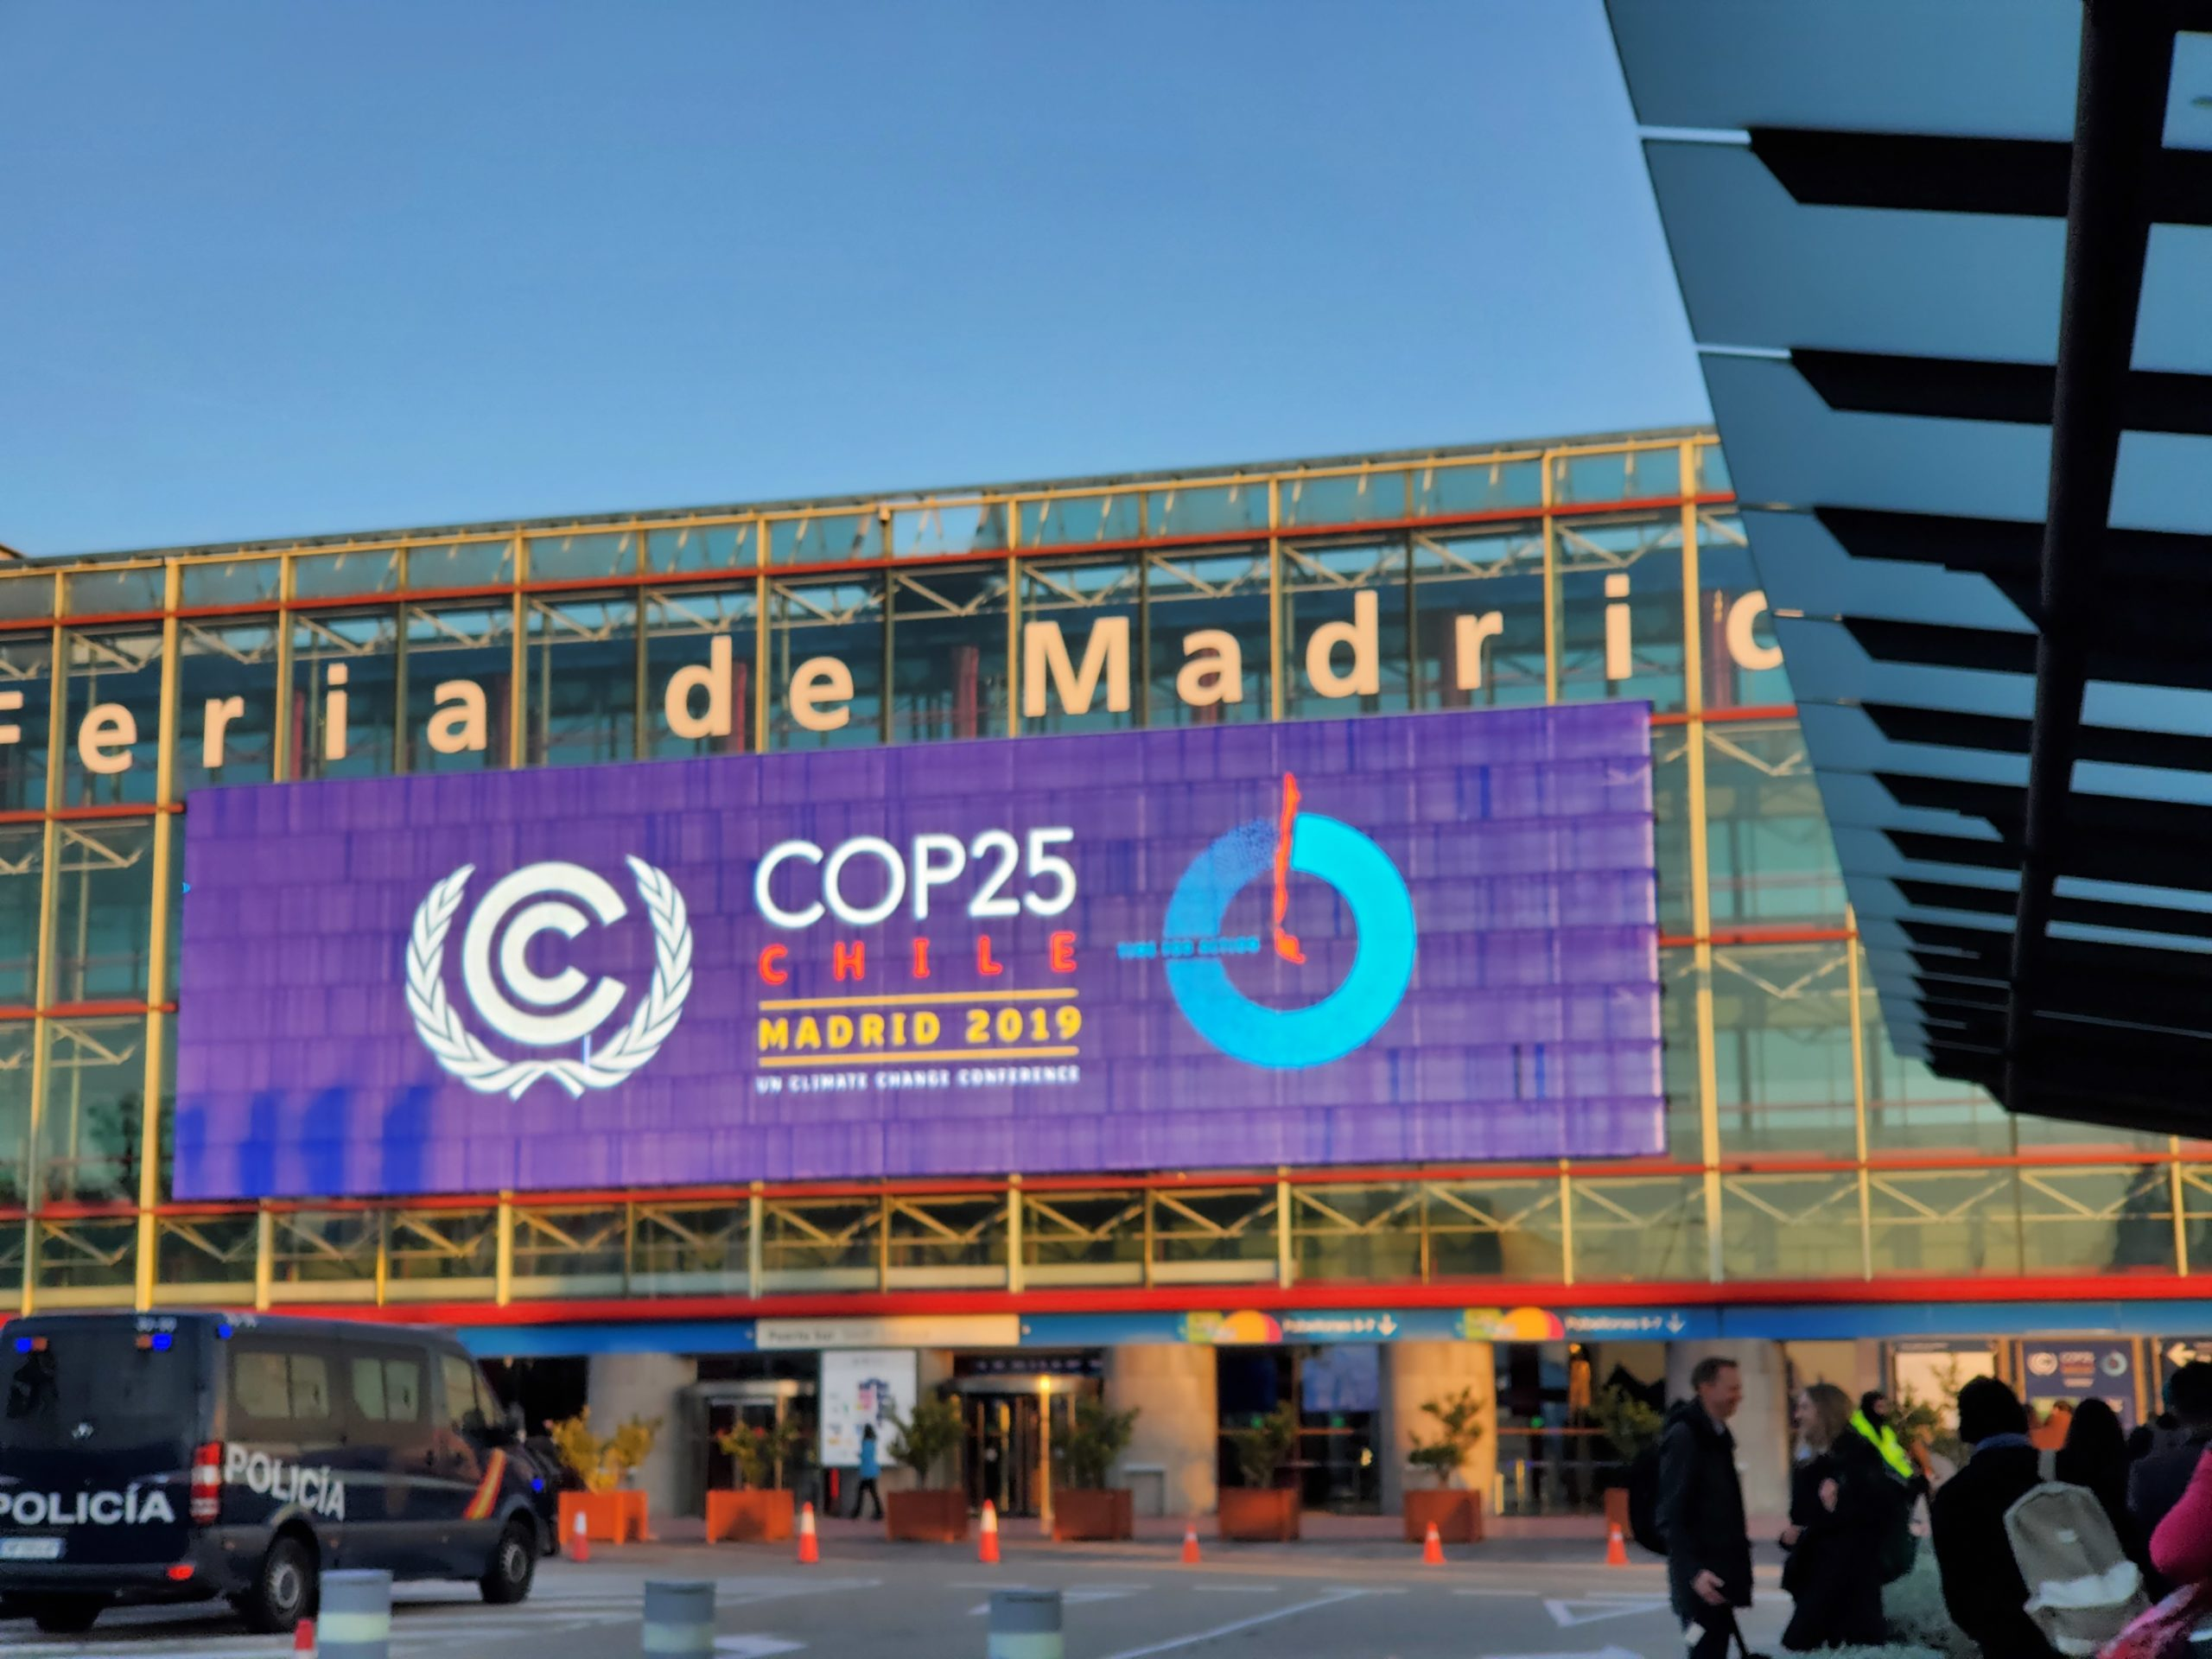 COP25 – my thoughts